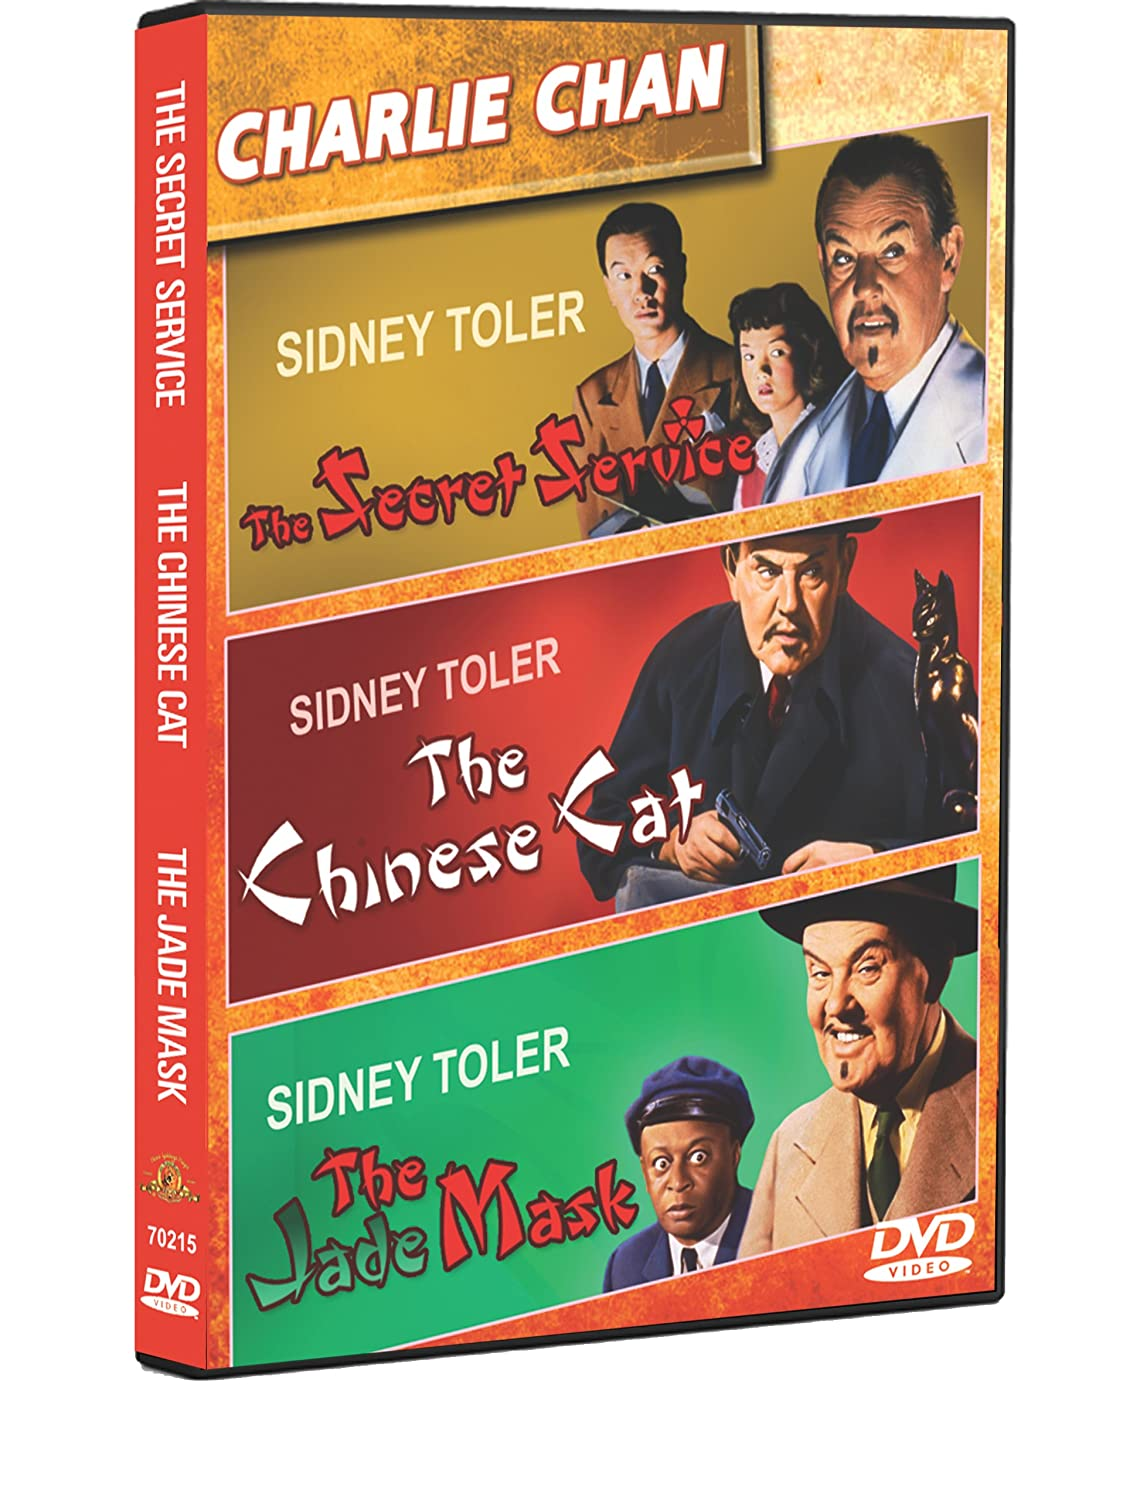 Charlie Chan: In the price Secret Service Mas 2021 new Jade Chinese Cat The